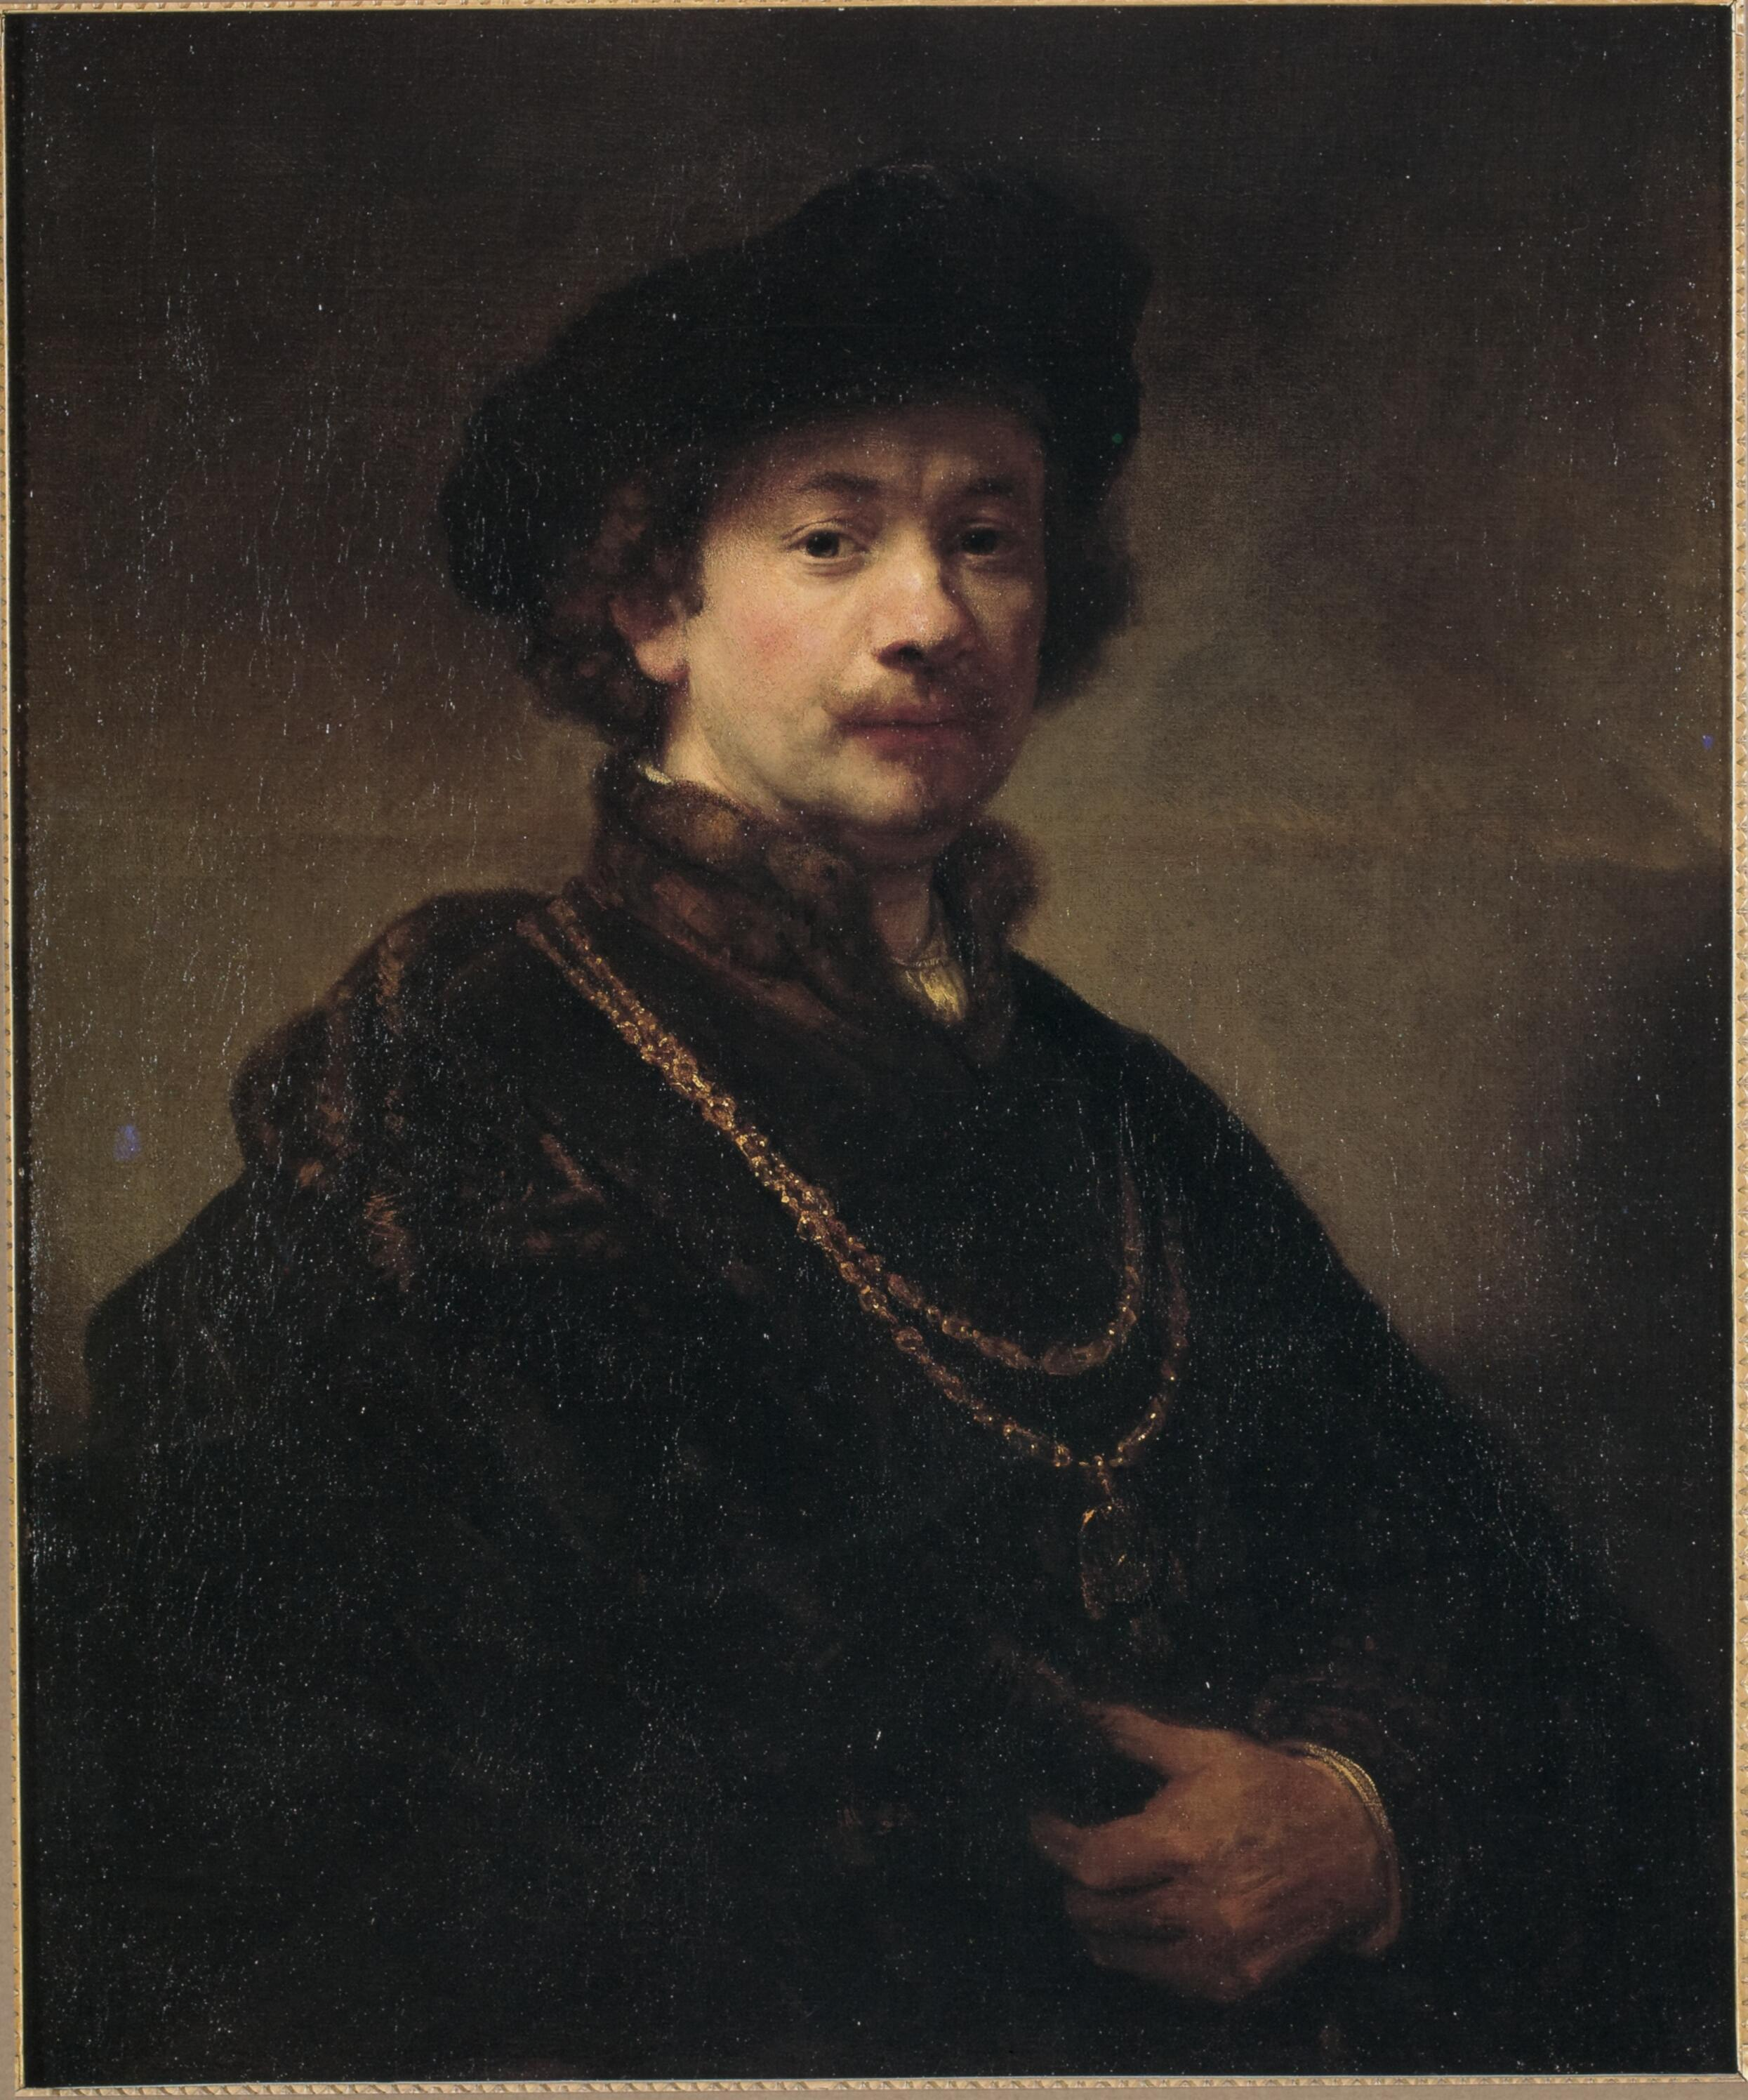 Self-Portrait with Beret, Gold Chain, and Medal , Rembrandt, 1640